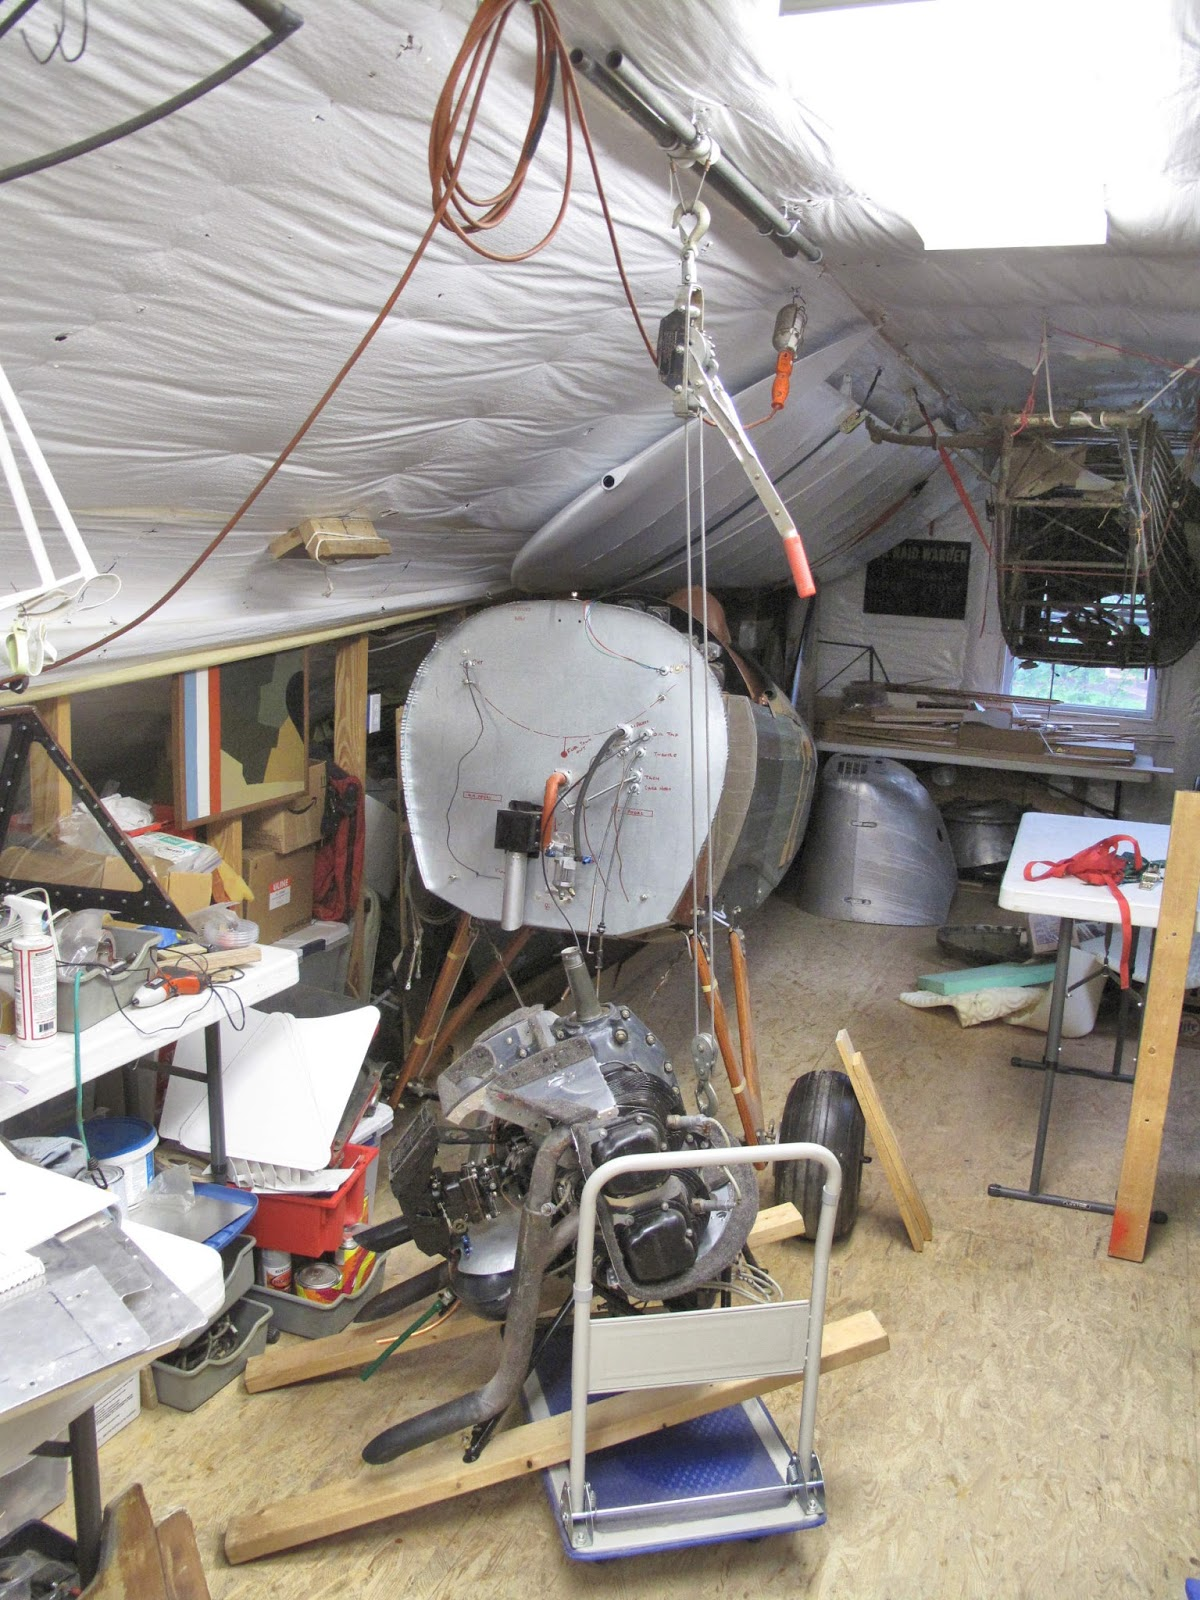 Fly Baby N4284c Memories And Adventures June 2016 Home Wiring Through Attic After Taking Off The Cowling Horizontal Tail Surfaces First Big Task Was To Remove Engine I Used Come Along On My Slider Tubes From